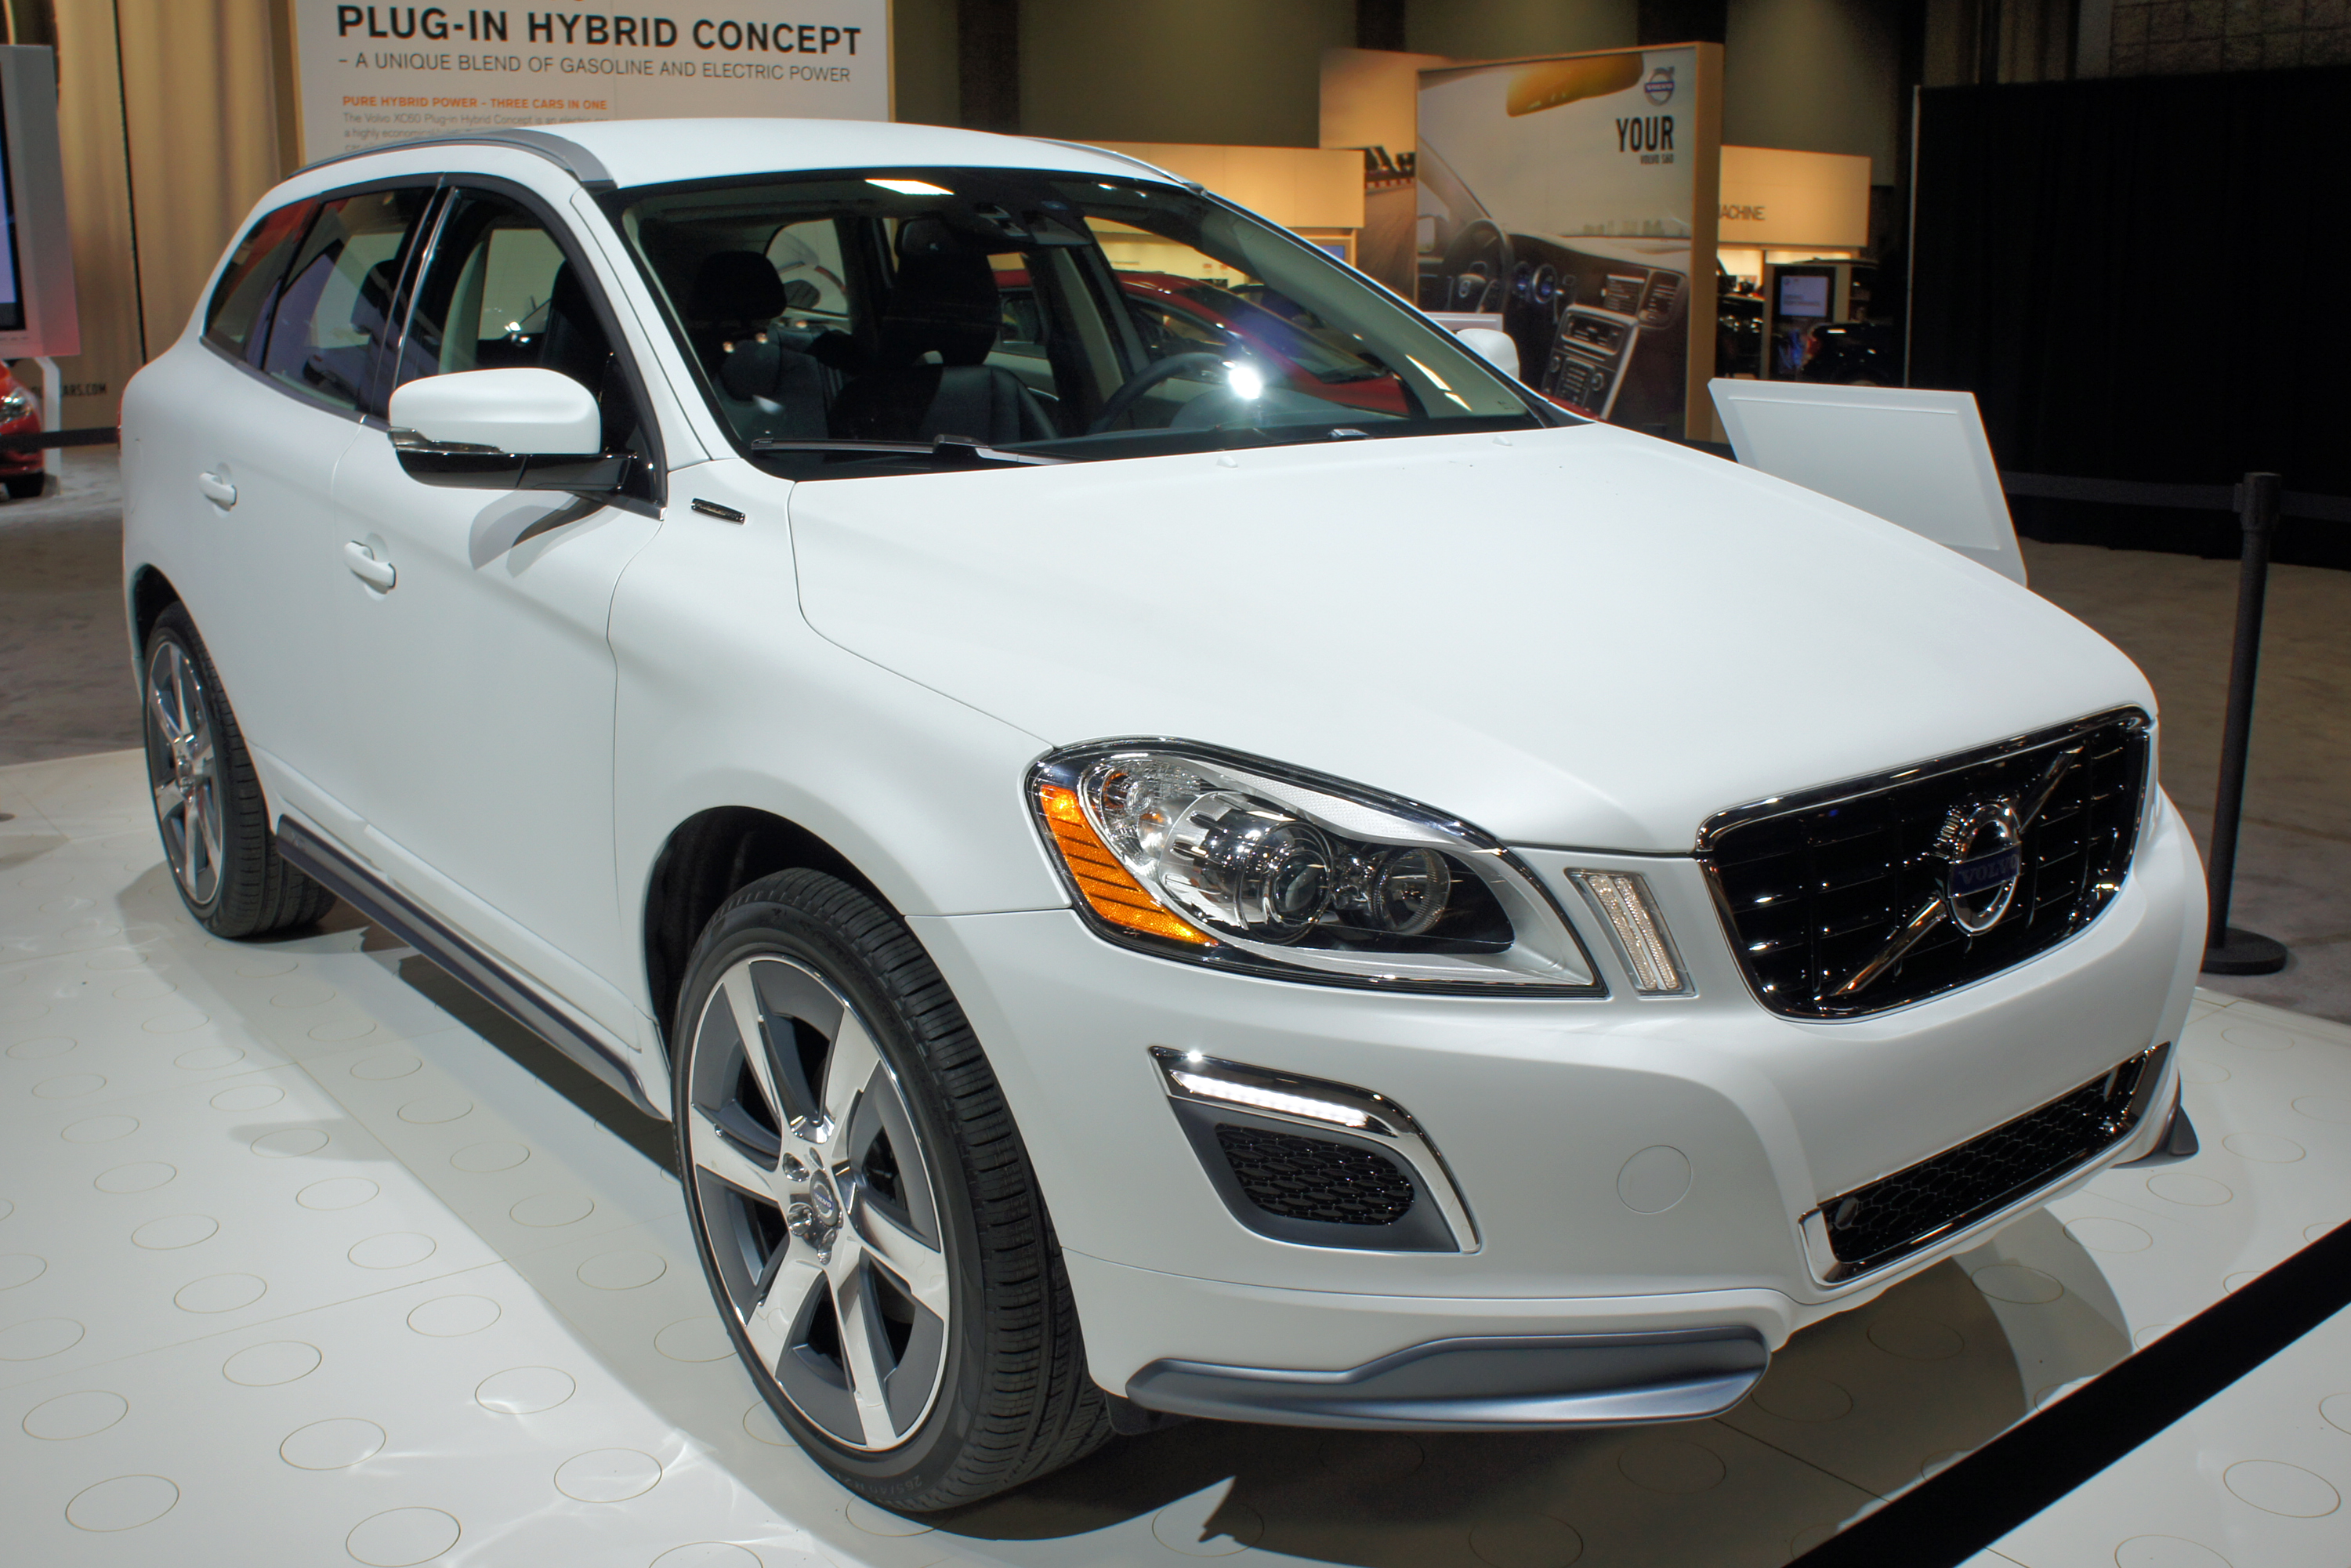 File Volvo Xc60 Plug In Hybrid Was 2012 0731 Jpg